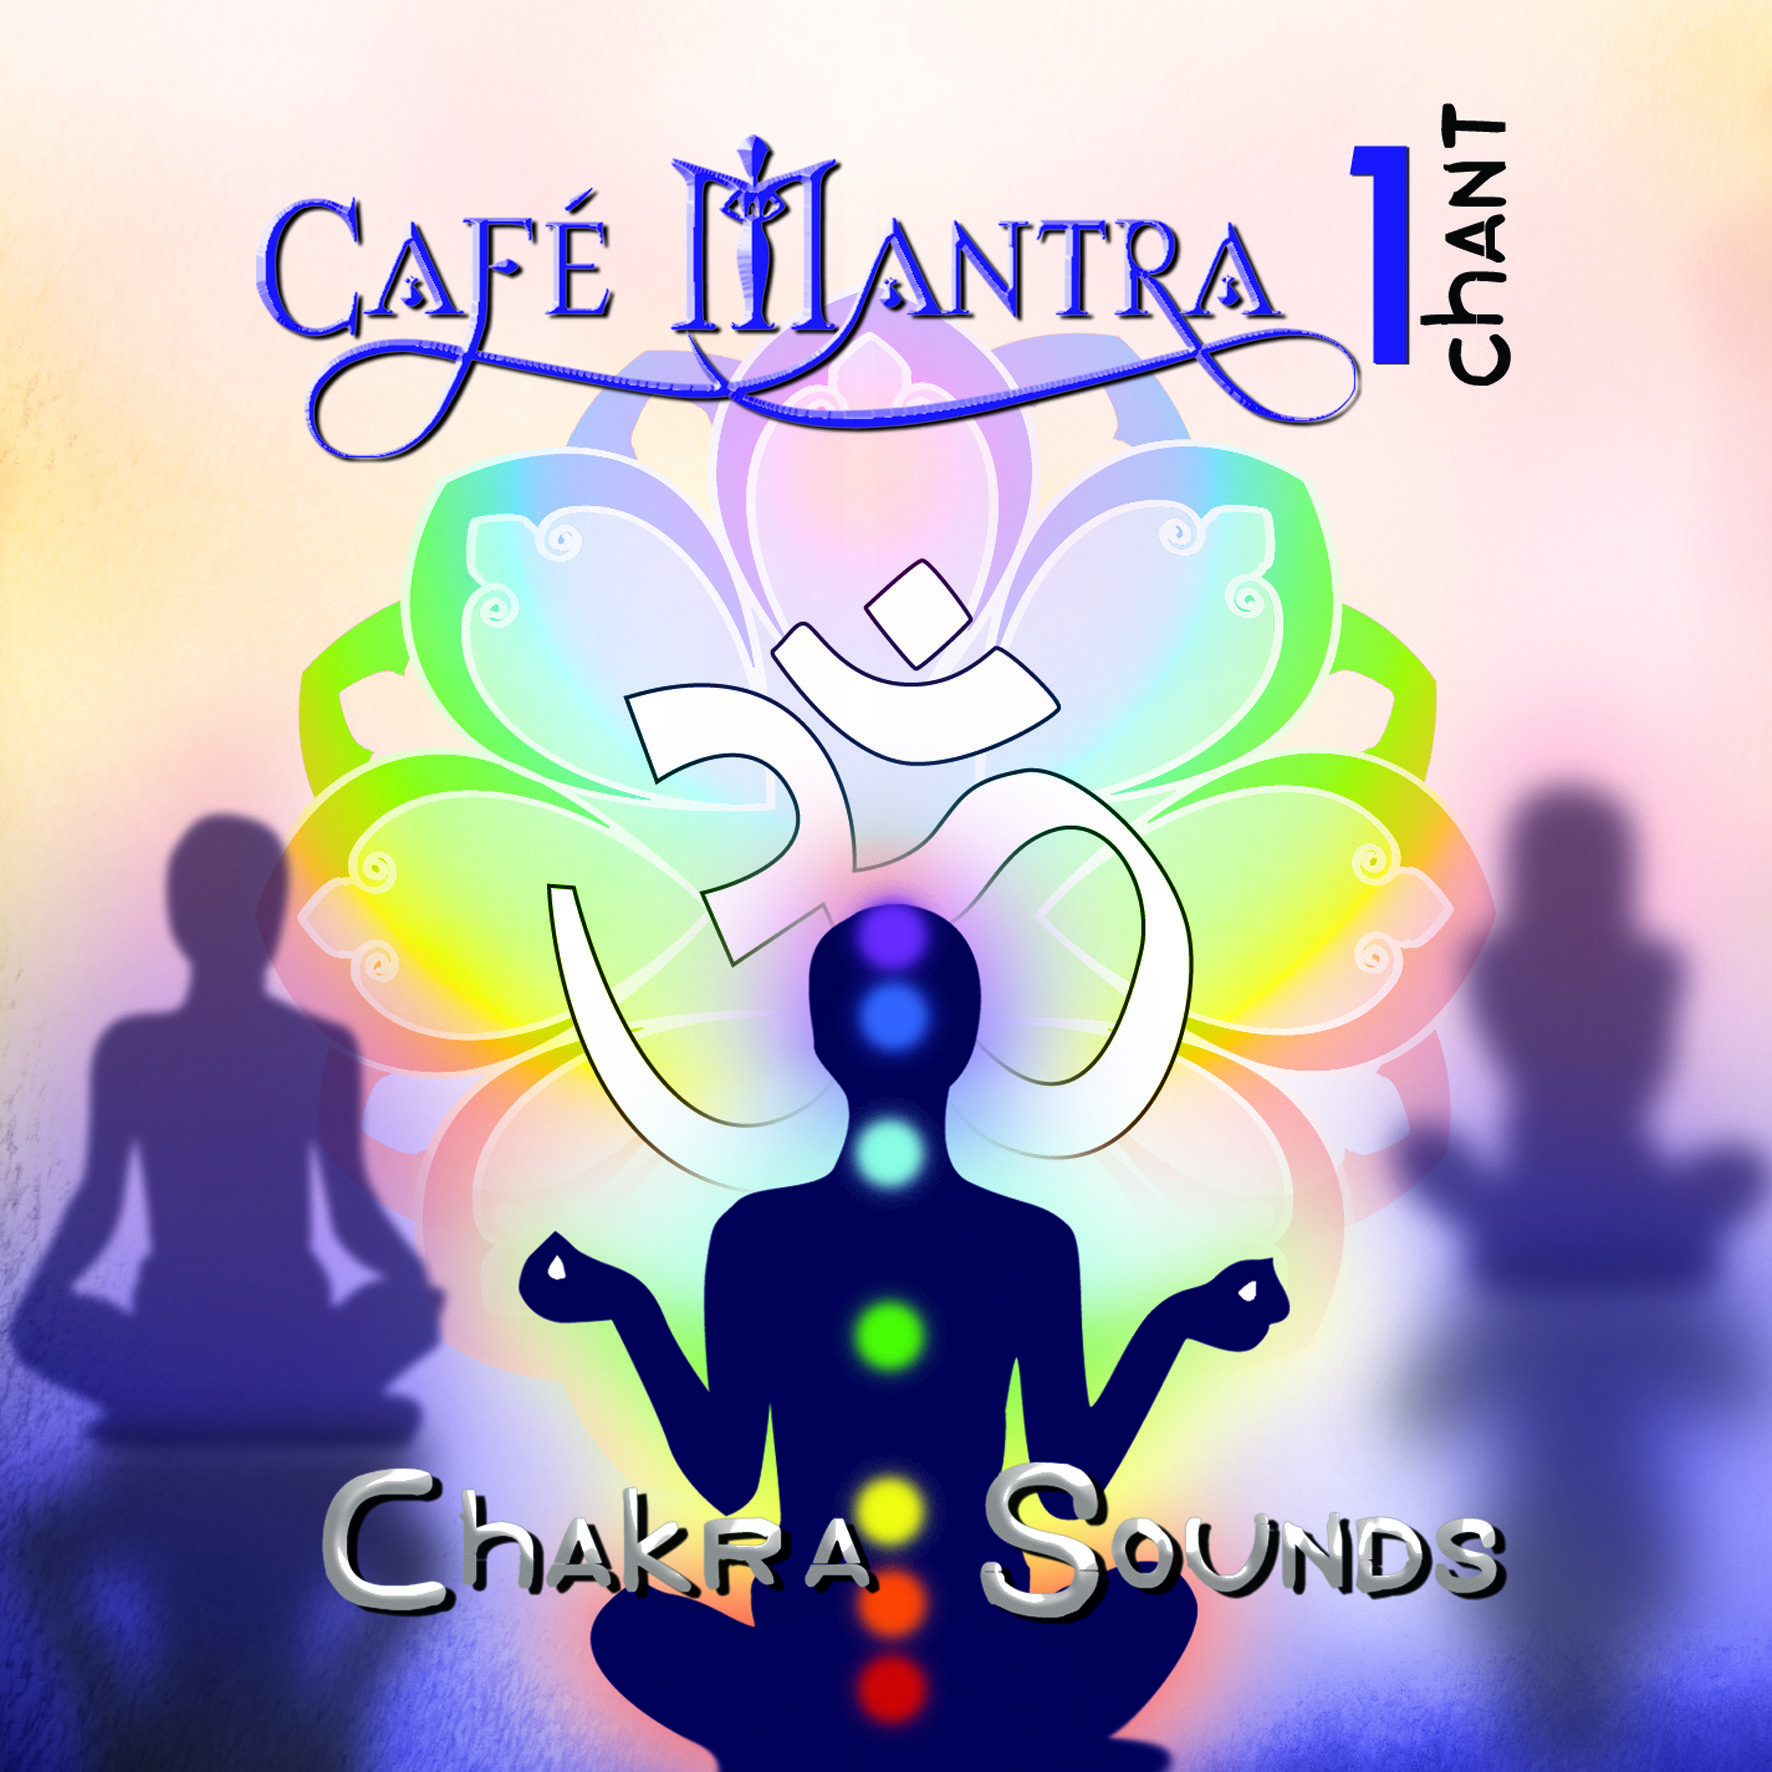 CD Cafe Mantra Chant1 Chakra Sounds 00005